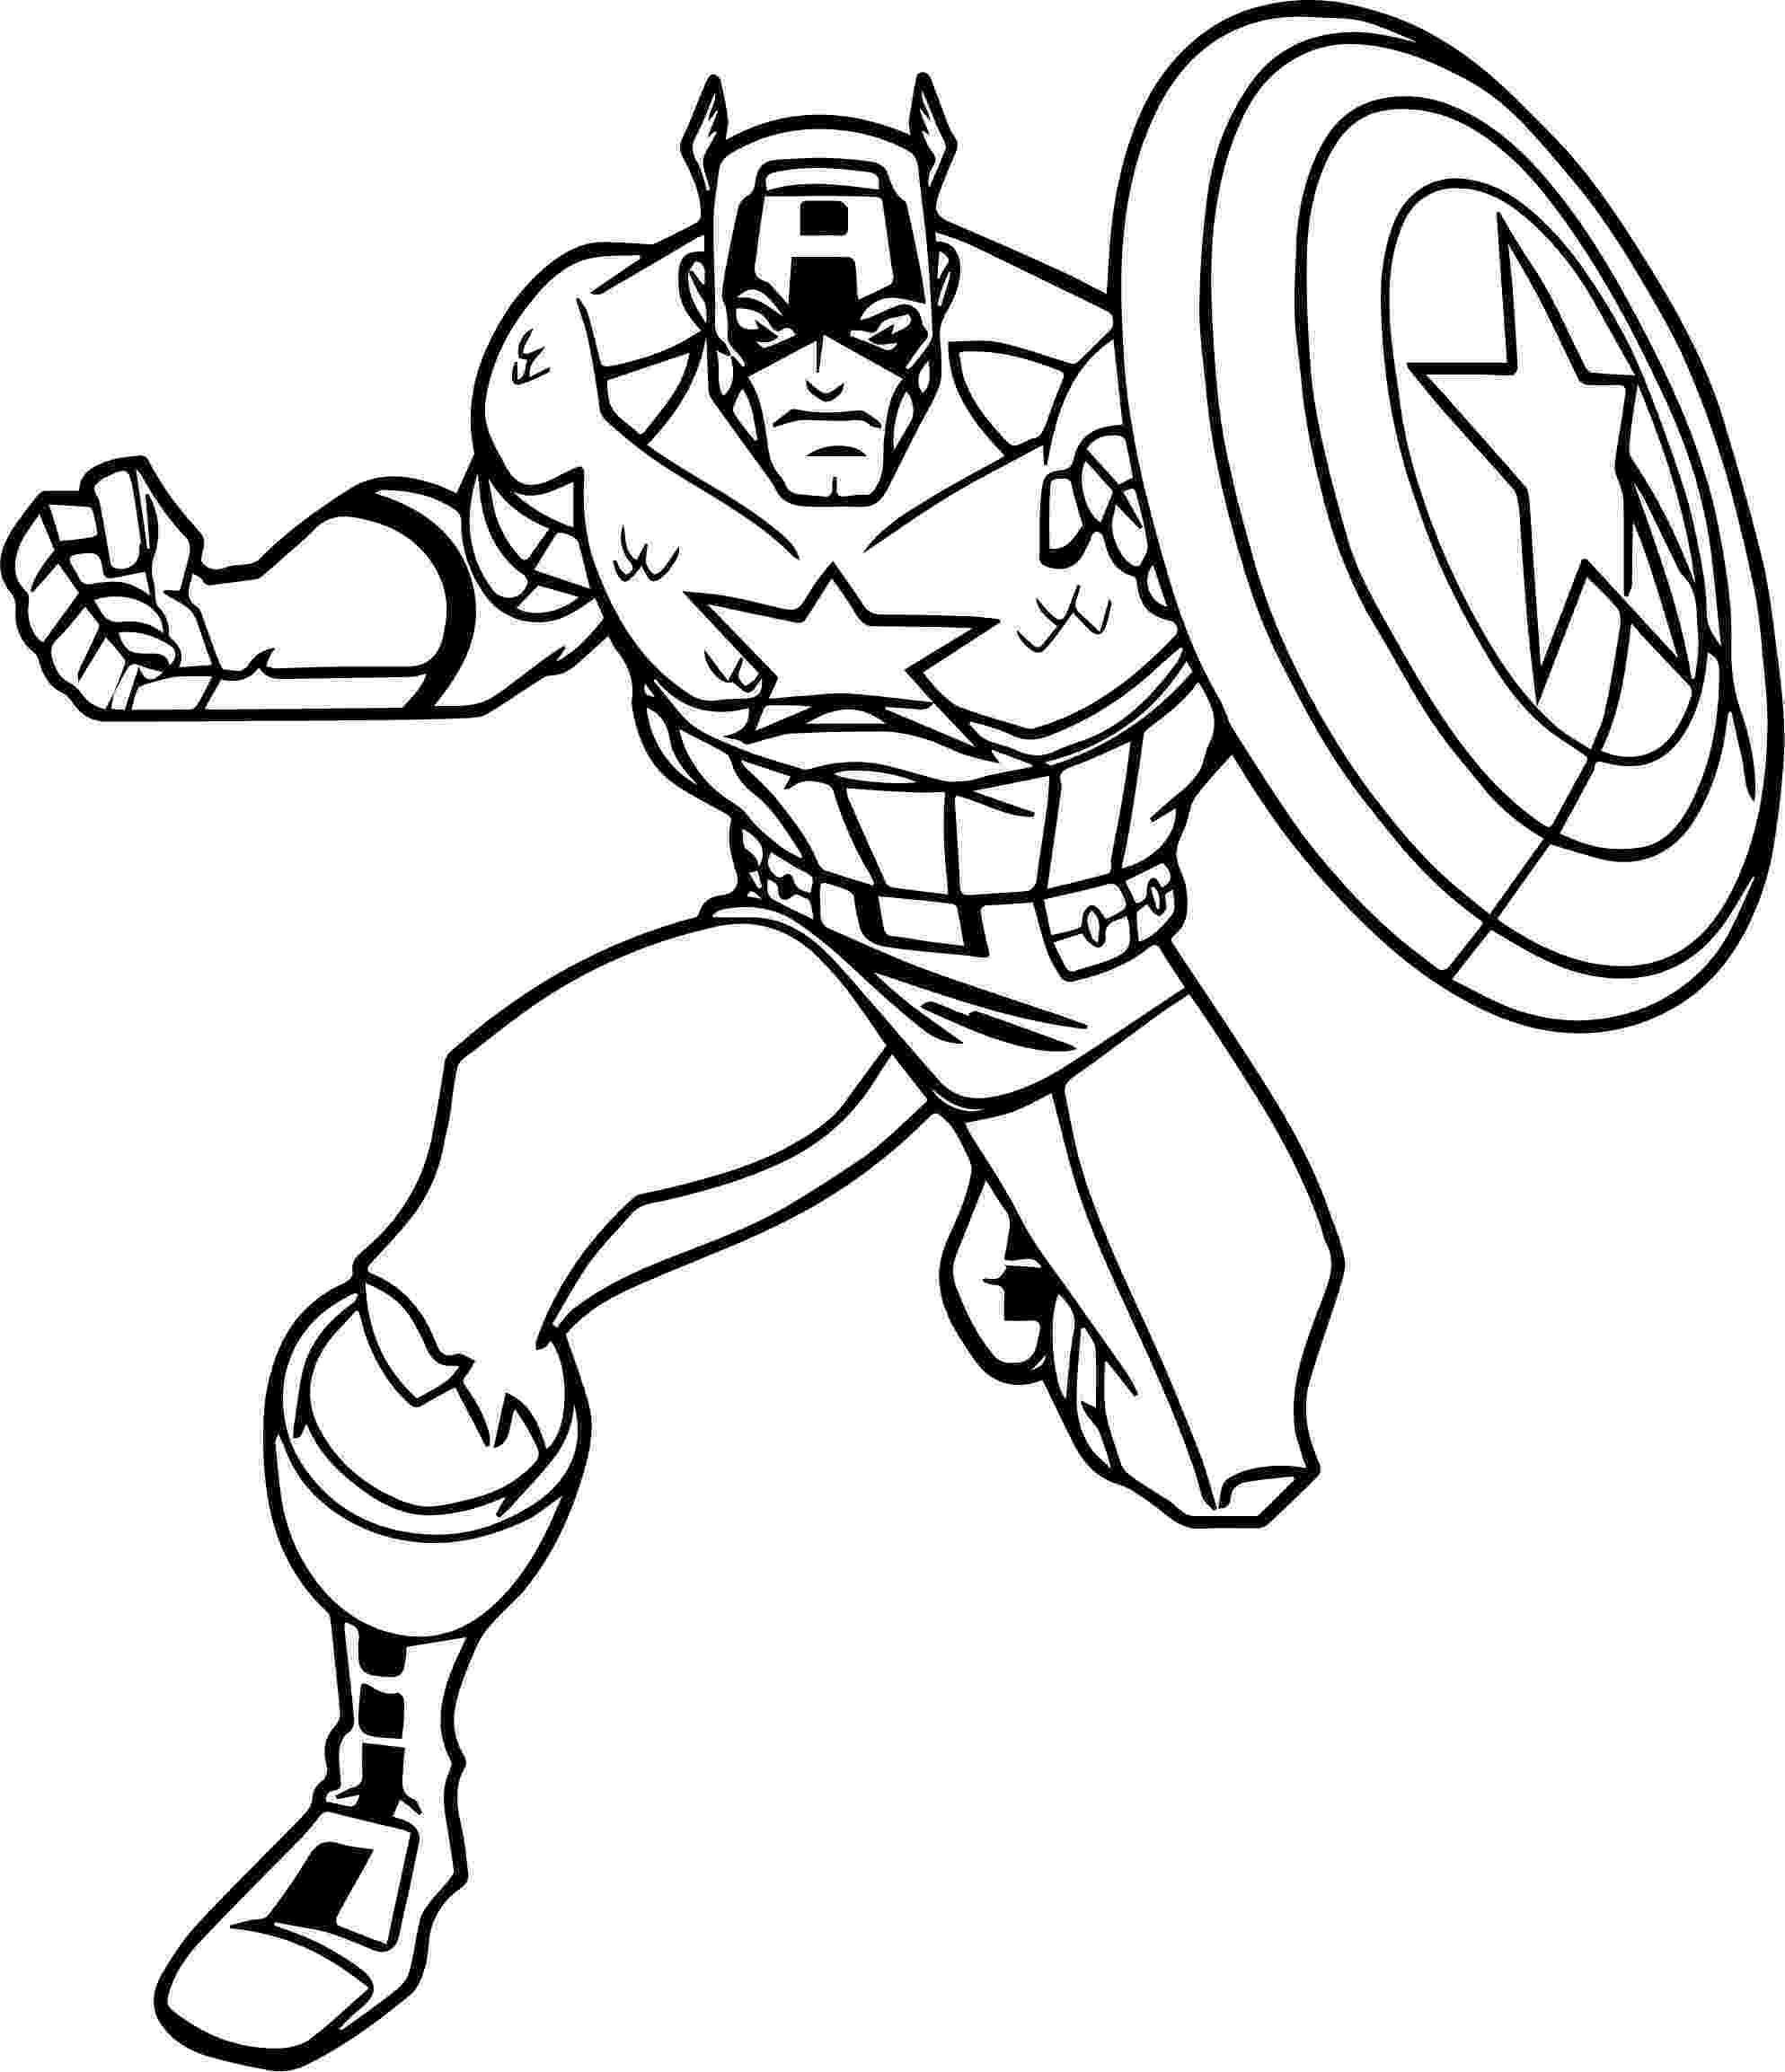 captain america colouring pages avengers coloring pages best coloring pages for kids america pages captain colouring